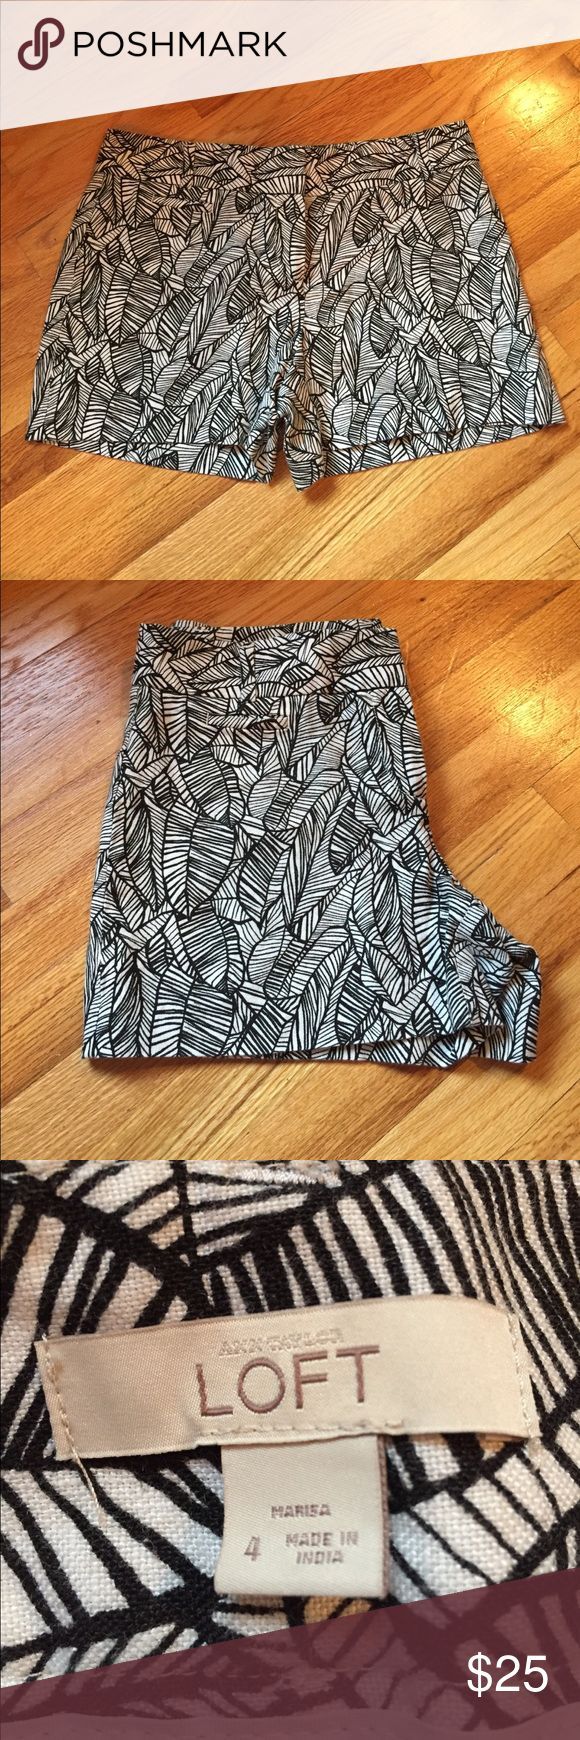 Black & White LOFT Feather Printed Shorts Black & White LOFT Feather Printed Shorts. Size 4. Like new! Looks great dressed up or down. LOFT Shorts